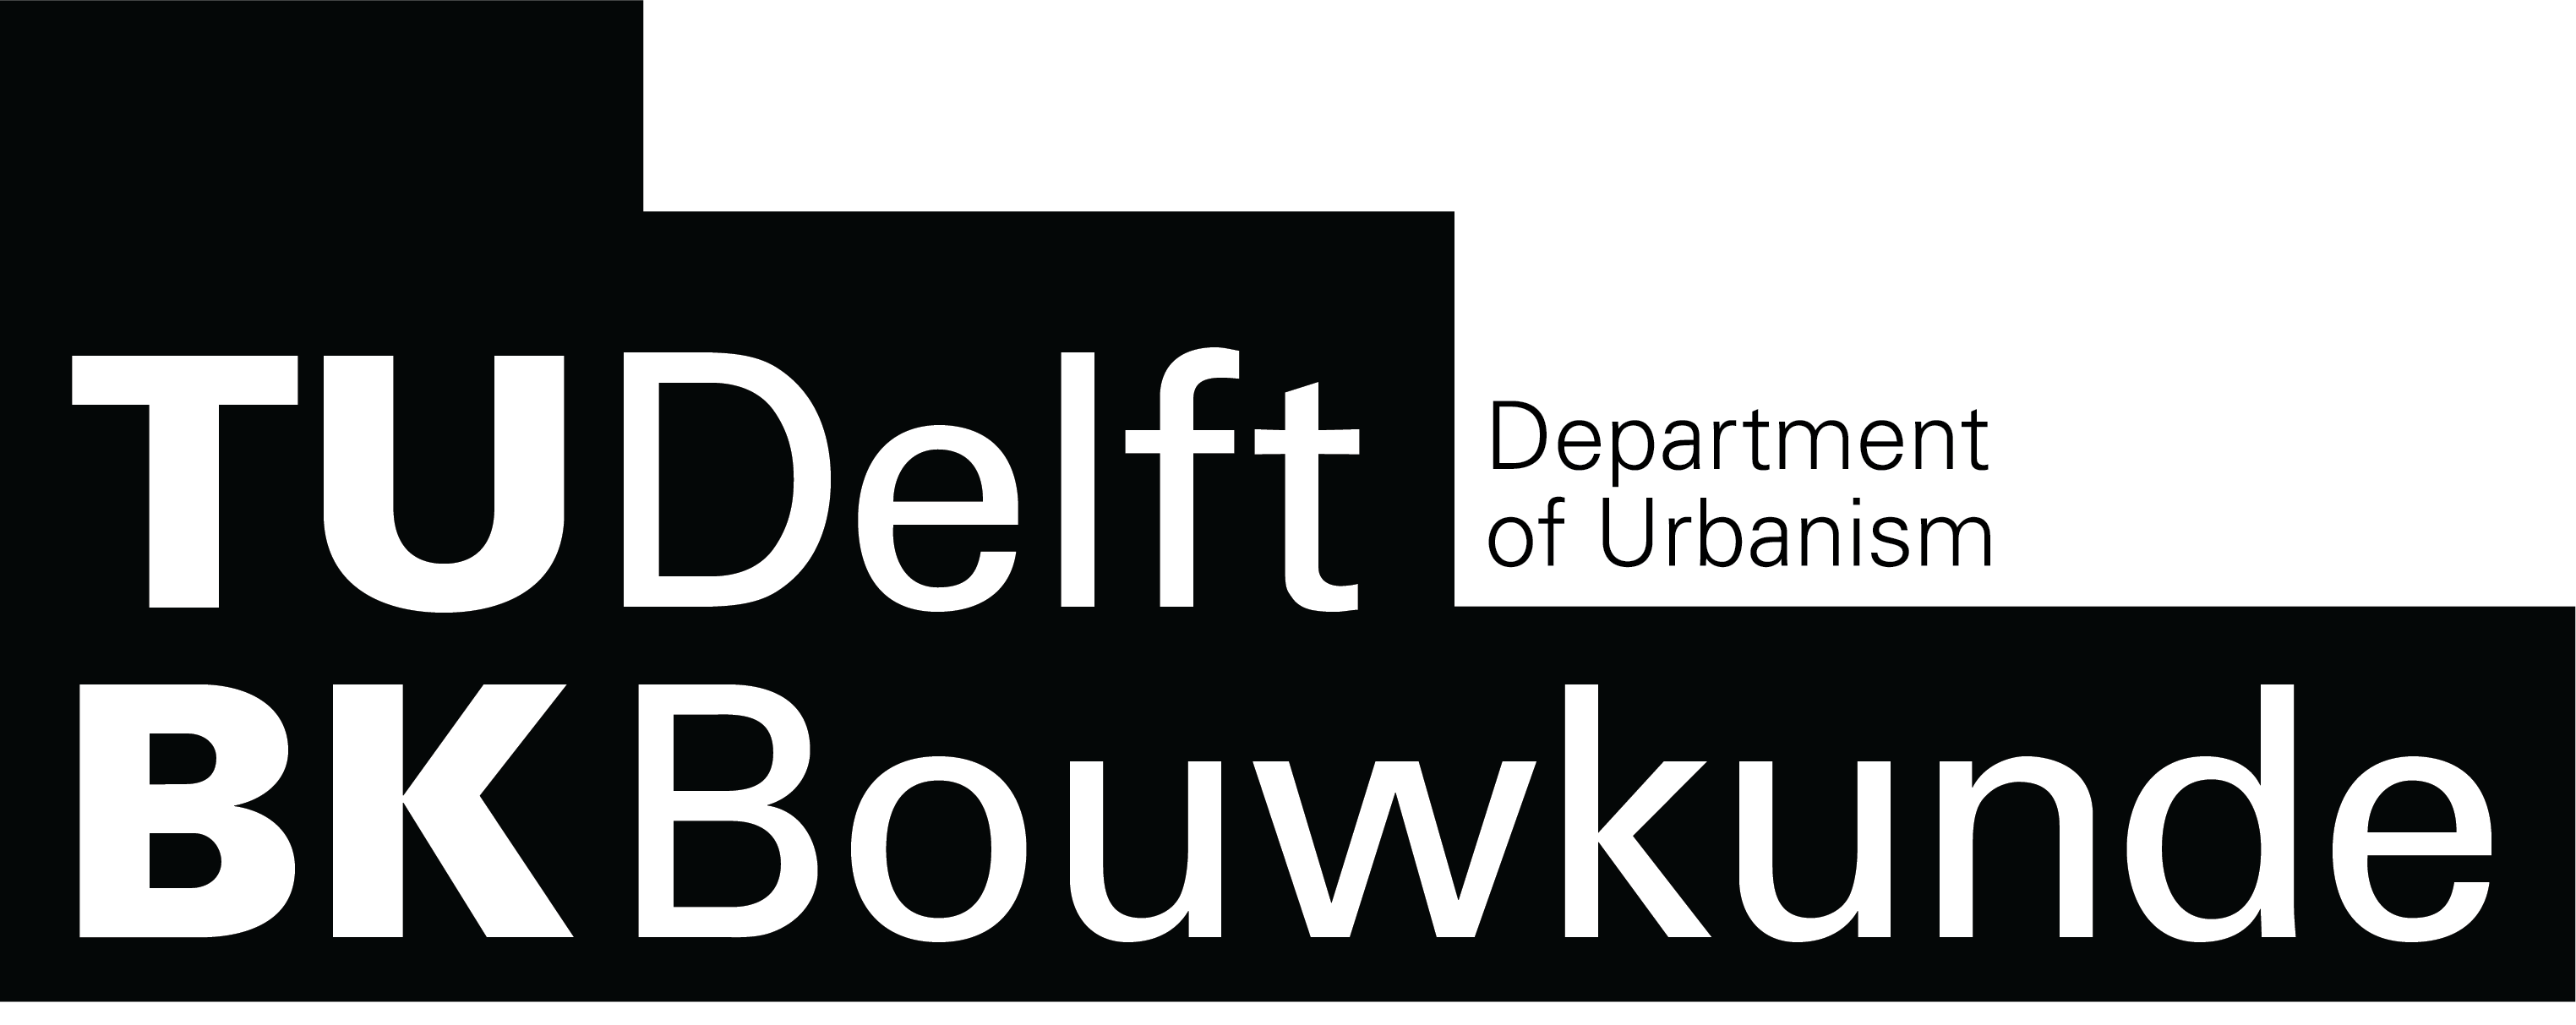 Department of Urbanism